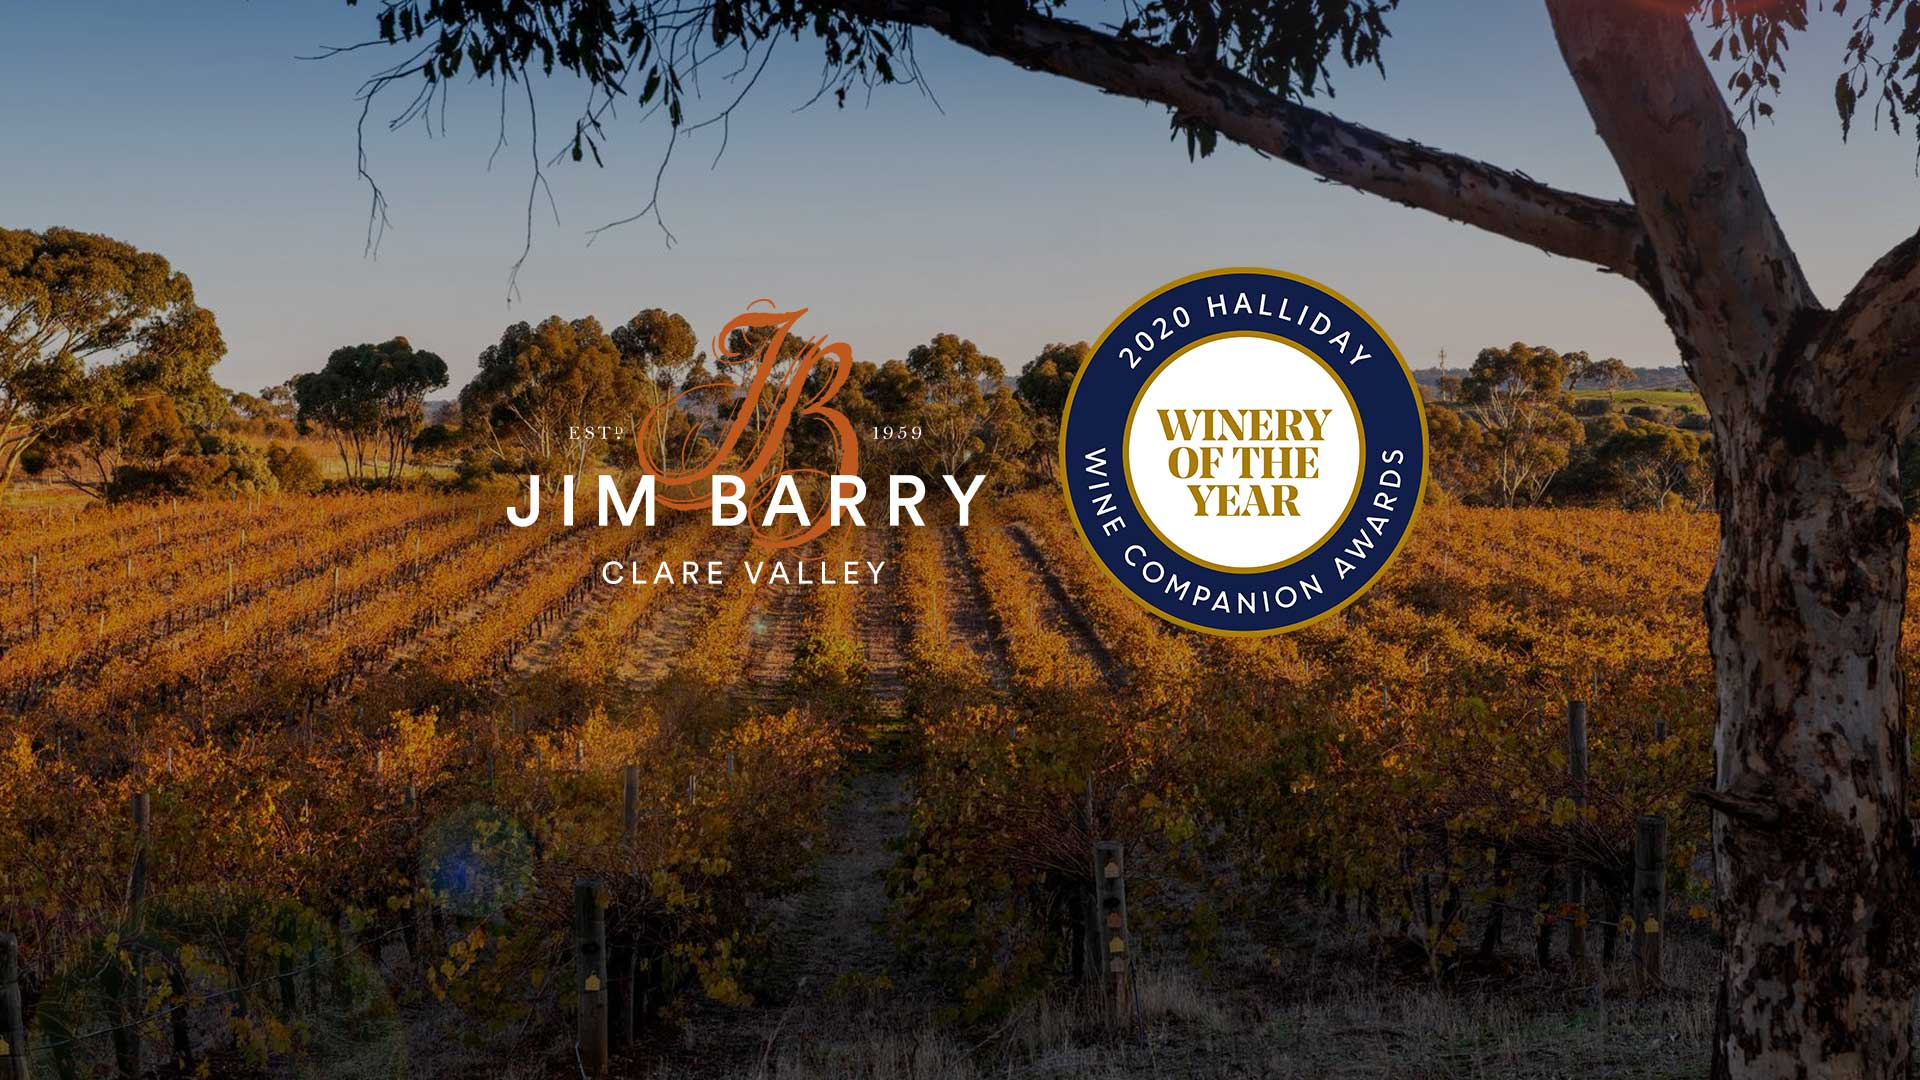 Jim Barry Winery of the Year!